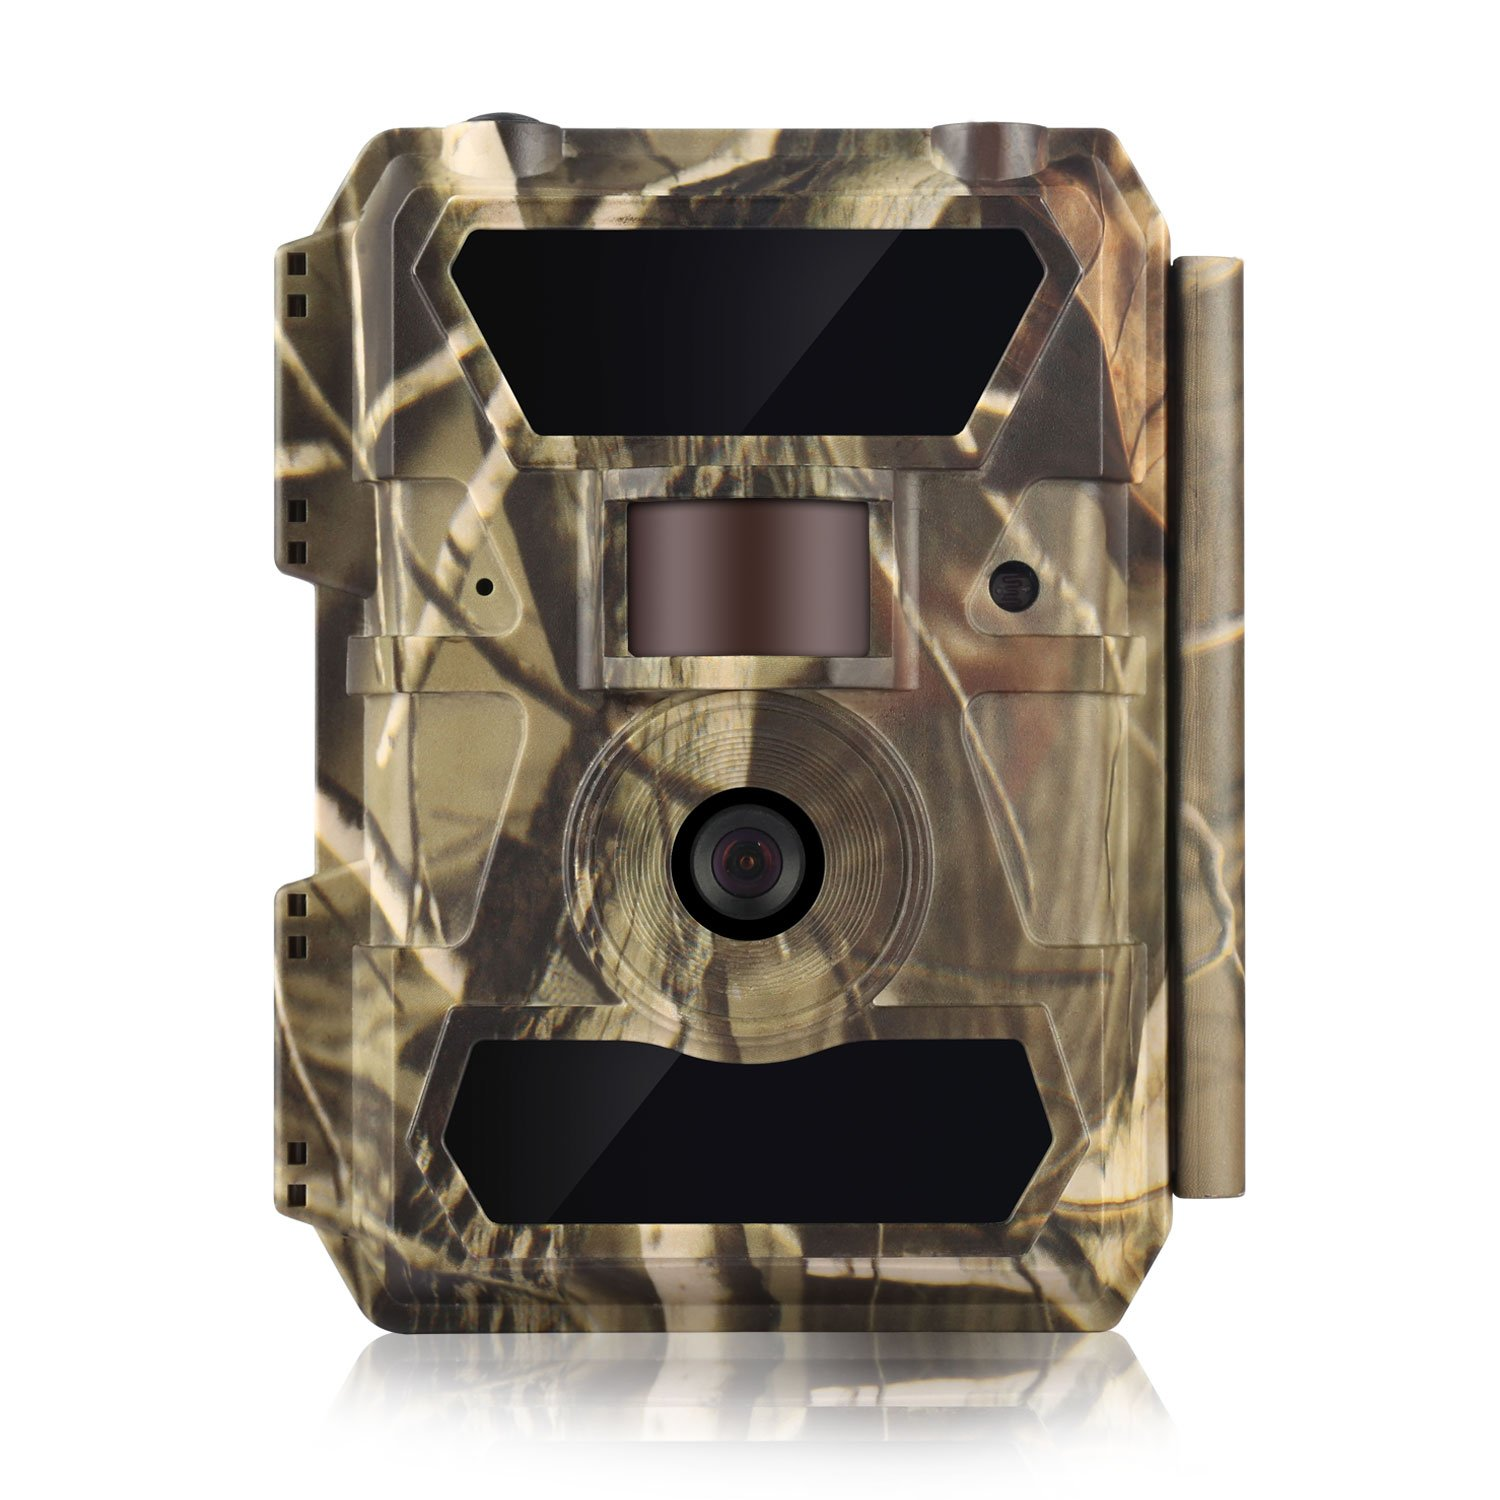 WingHome Trail Camera, 1080P 12M Game Cameras with Night Vision Waterproof HD Video Motion Activated Camera 58PCS Infrared No Flash Hunting Camera for Home Backyard Outdoor Wildlife Photograph by WingHome